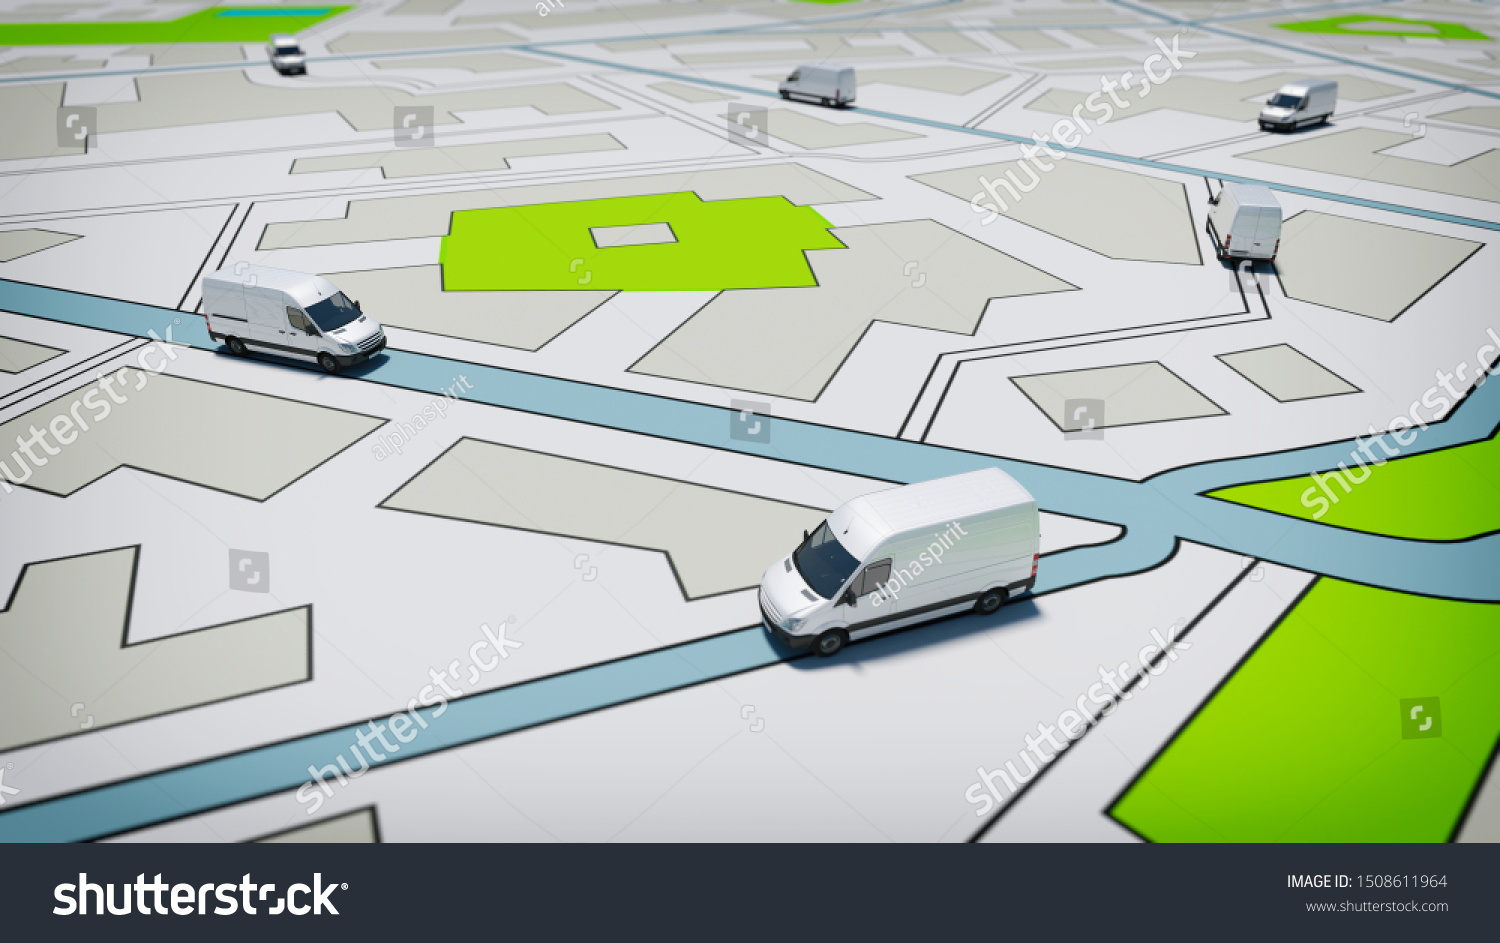 Trucks on a road city map. Concept of global shipment and GPS tracking #1508611964